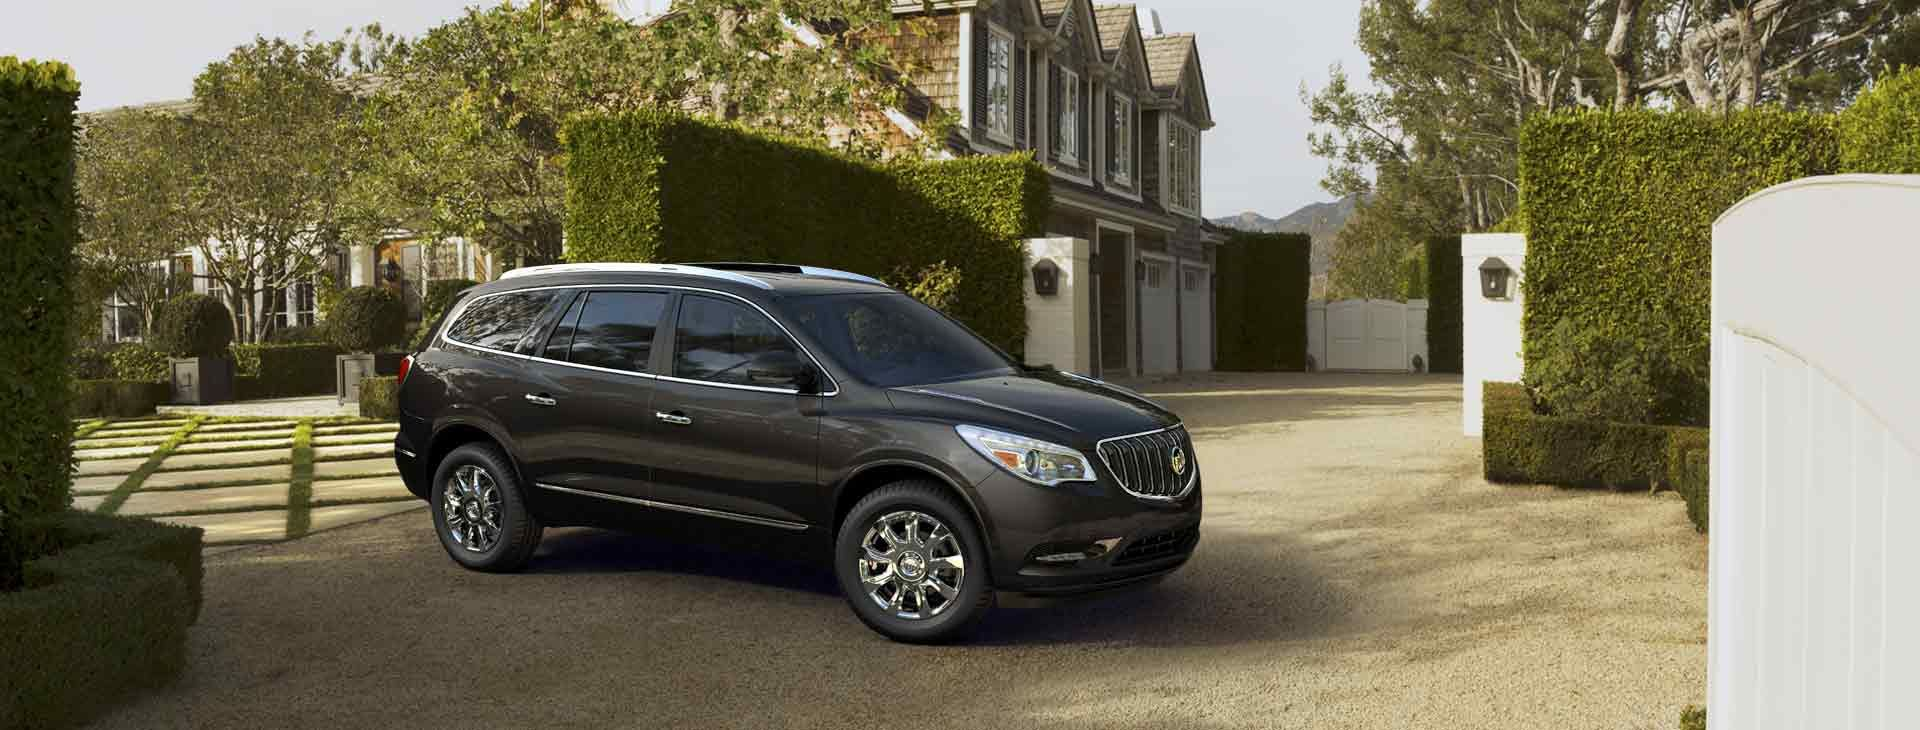 2016 Buick Enclave Colors Buick Enclave Luxury Suv Buick